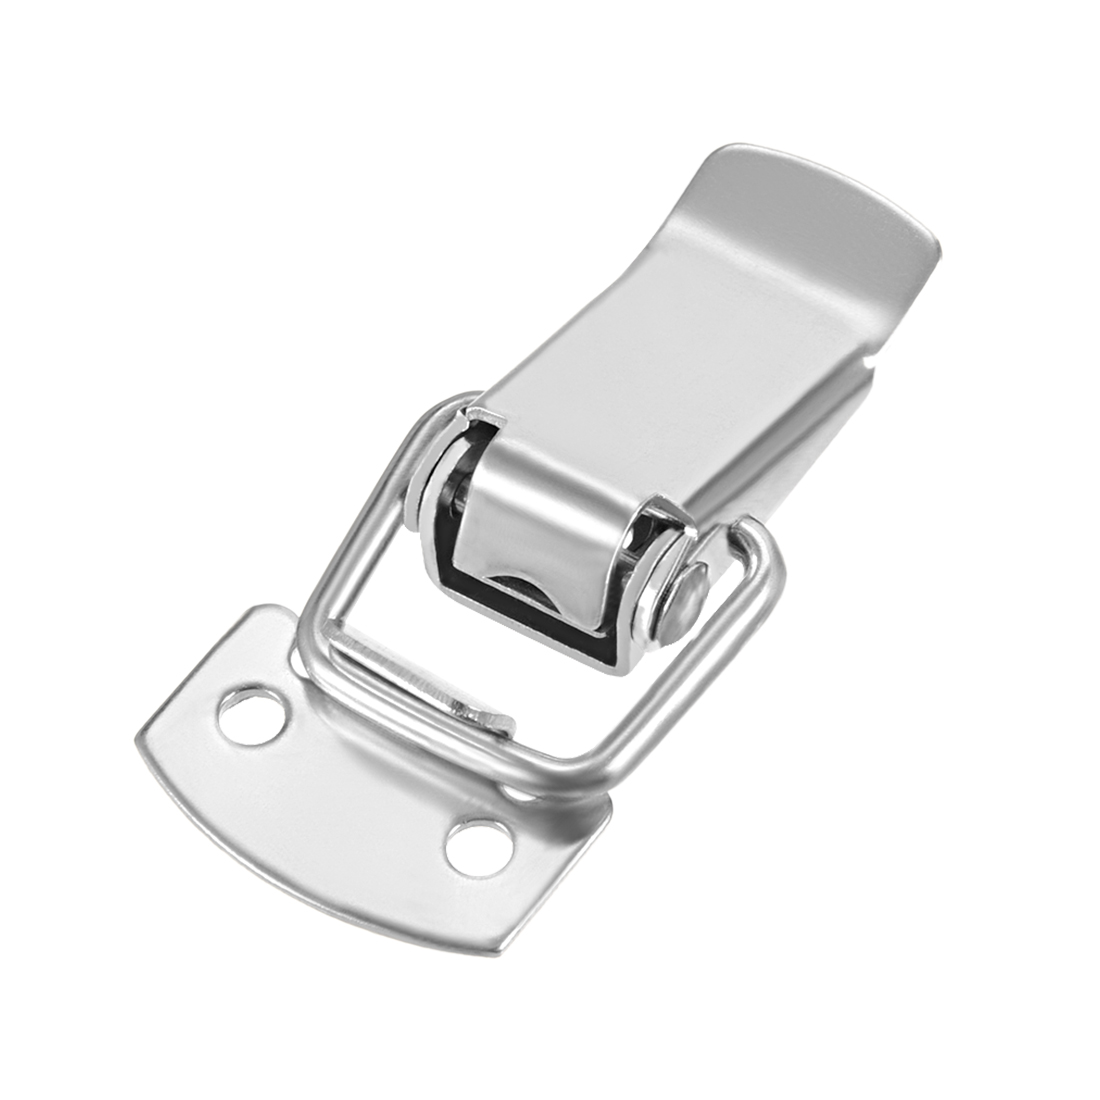 Uxcell 8 Pcs 304 Stainless Steel Spring Loaded Toggle Case Box Chest Trunk Latch Catches Hasps Clamps, 49mm Overall Length